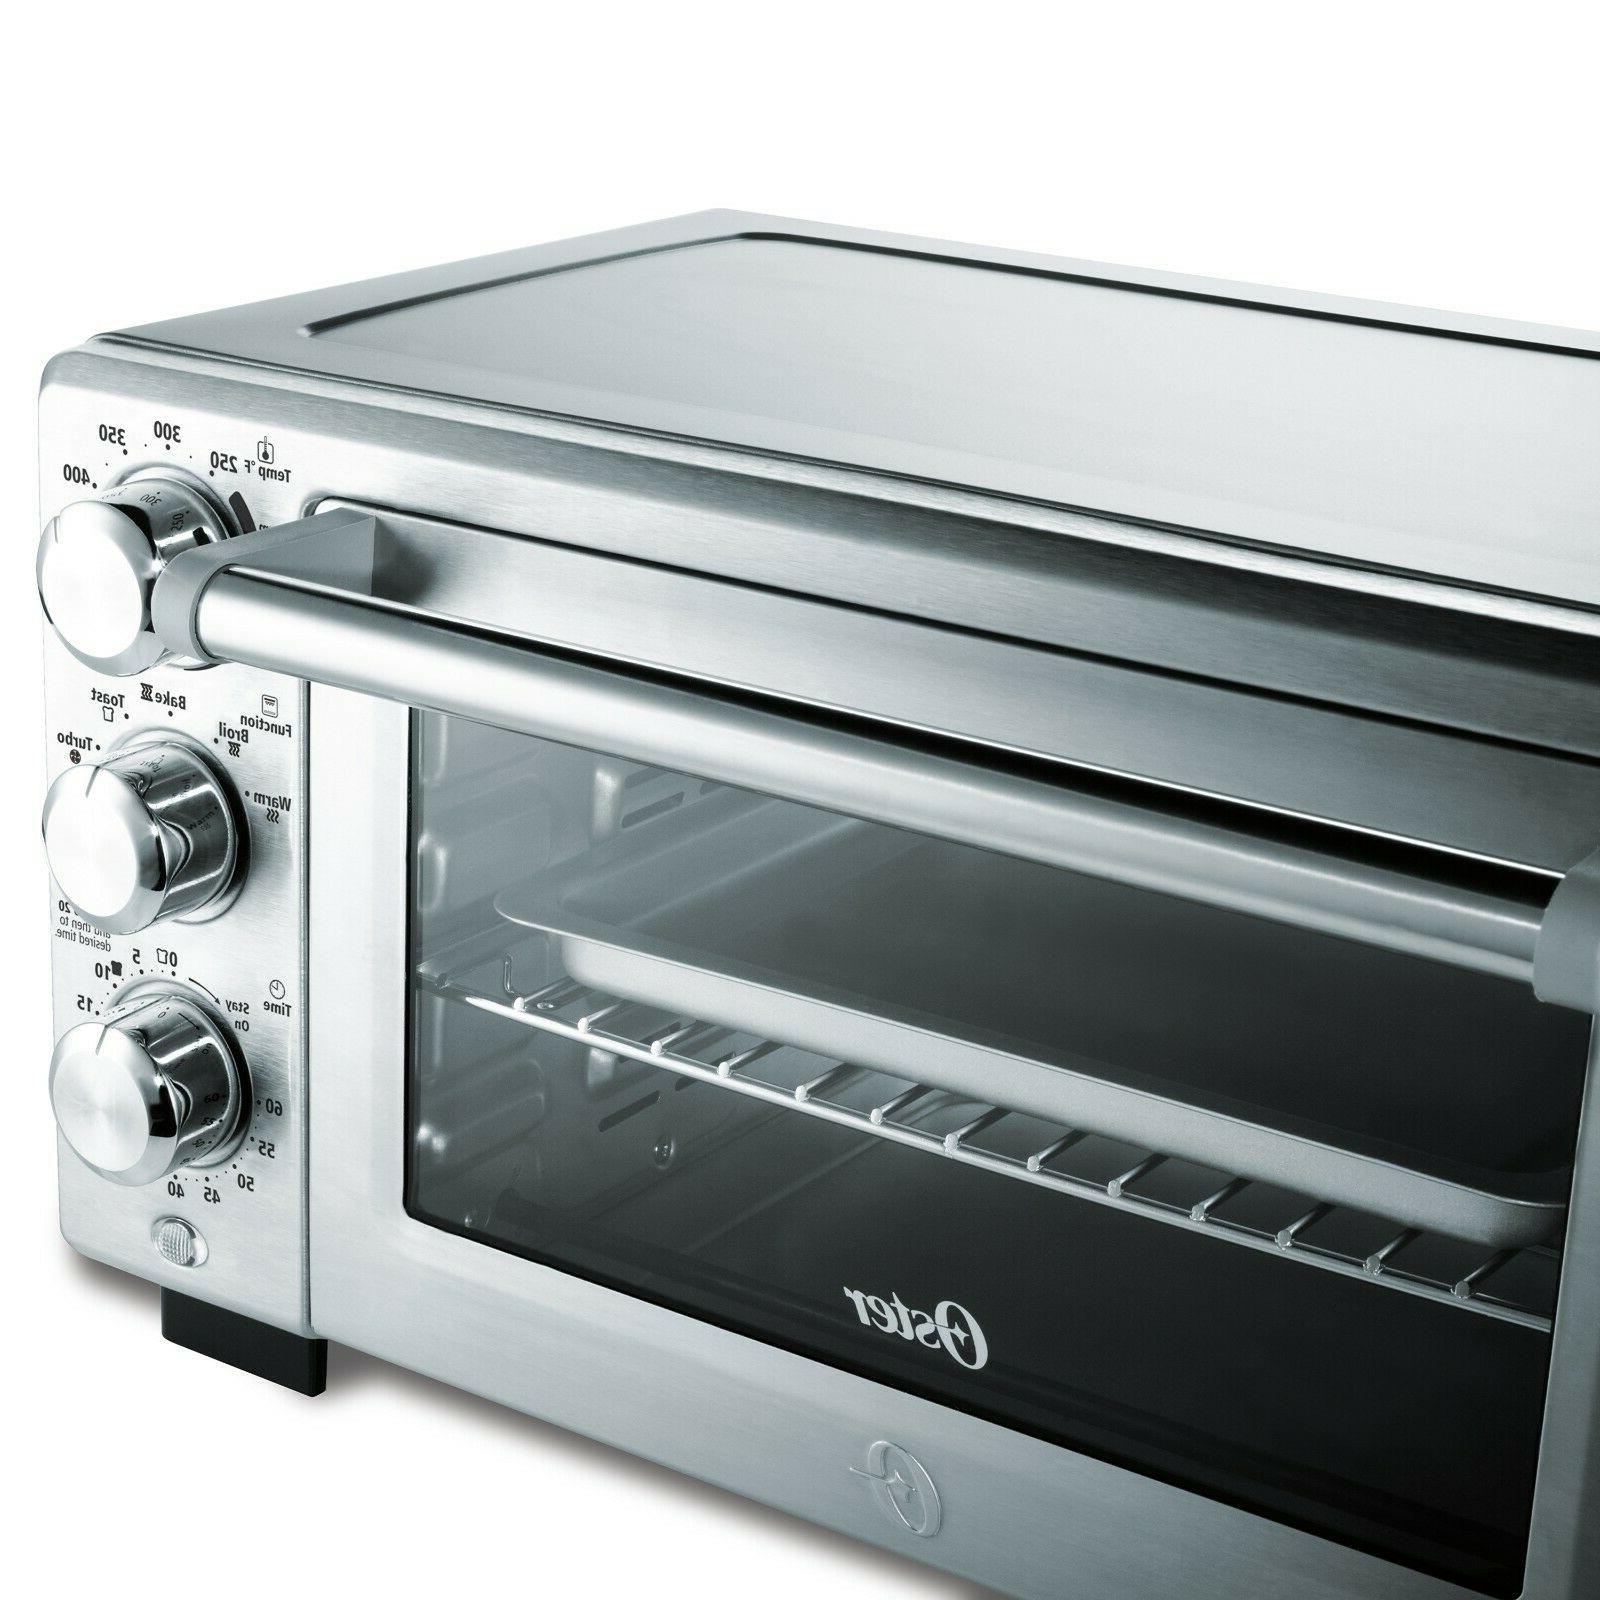 Oster Countertop Oven, Stainless